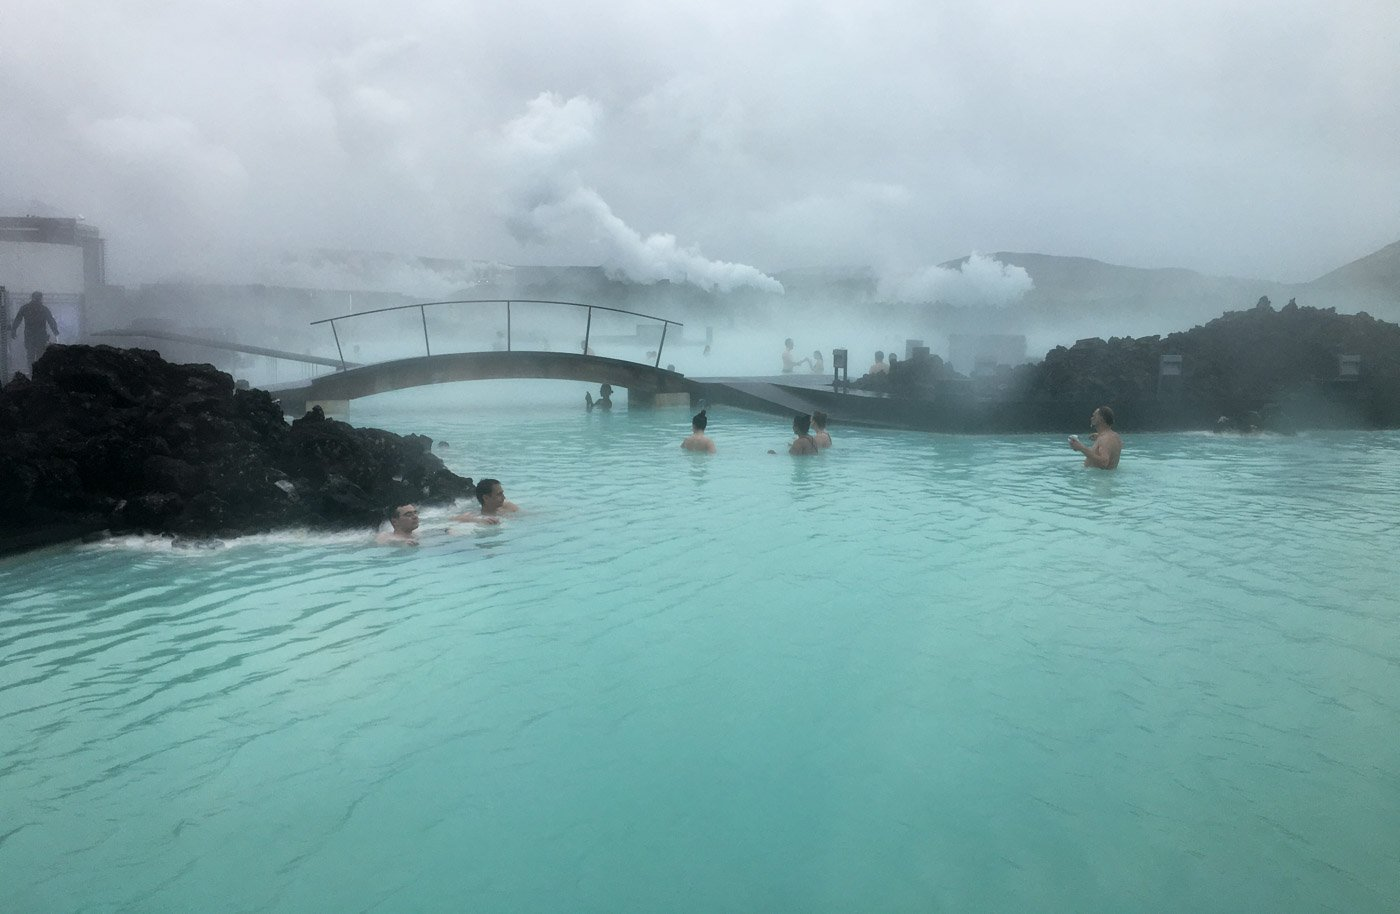 Are you planning a long layover in Iceland? Here are some fun things to do near Keflavik Airport, visiting Reykjanes Peninsula on an Iceland stopover! Visit the Blue Lagoon on layover.